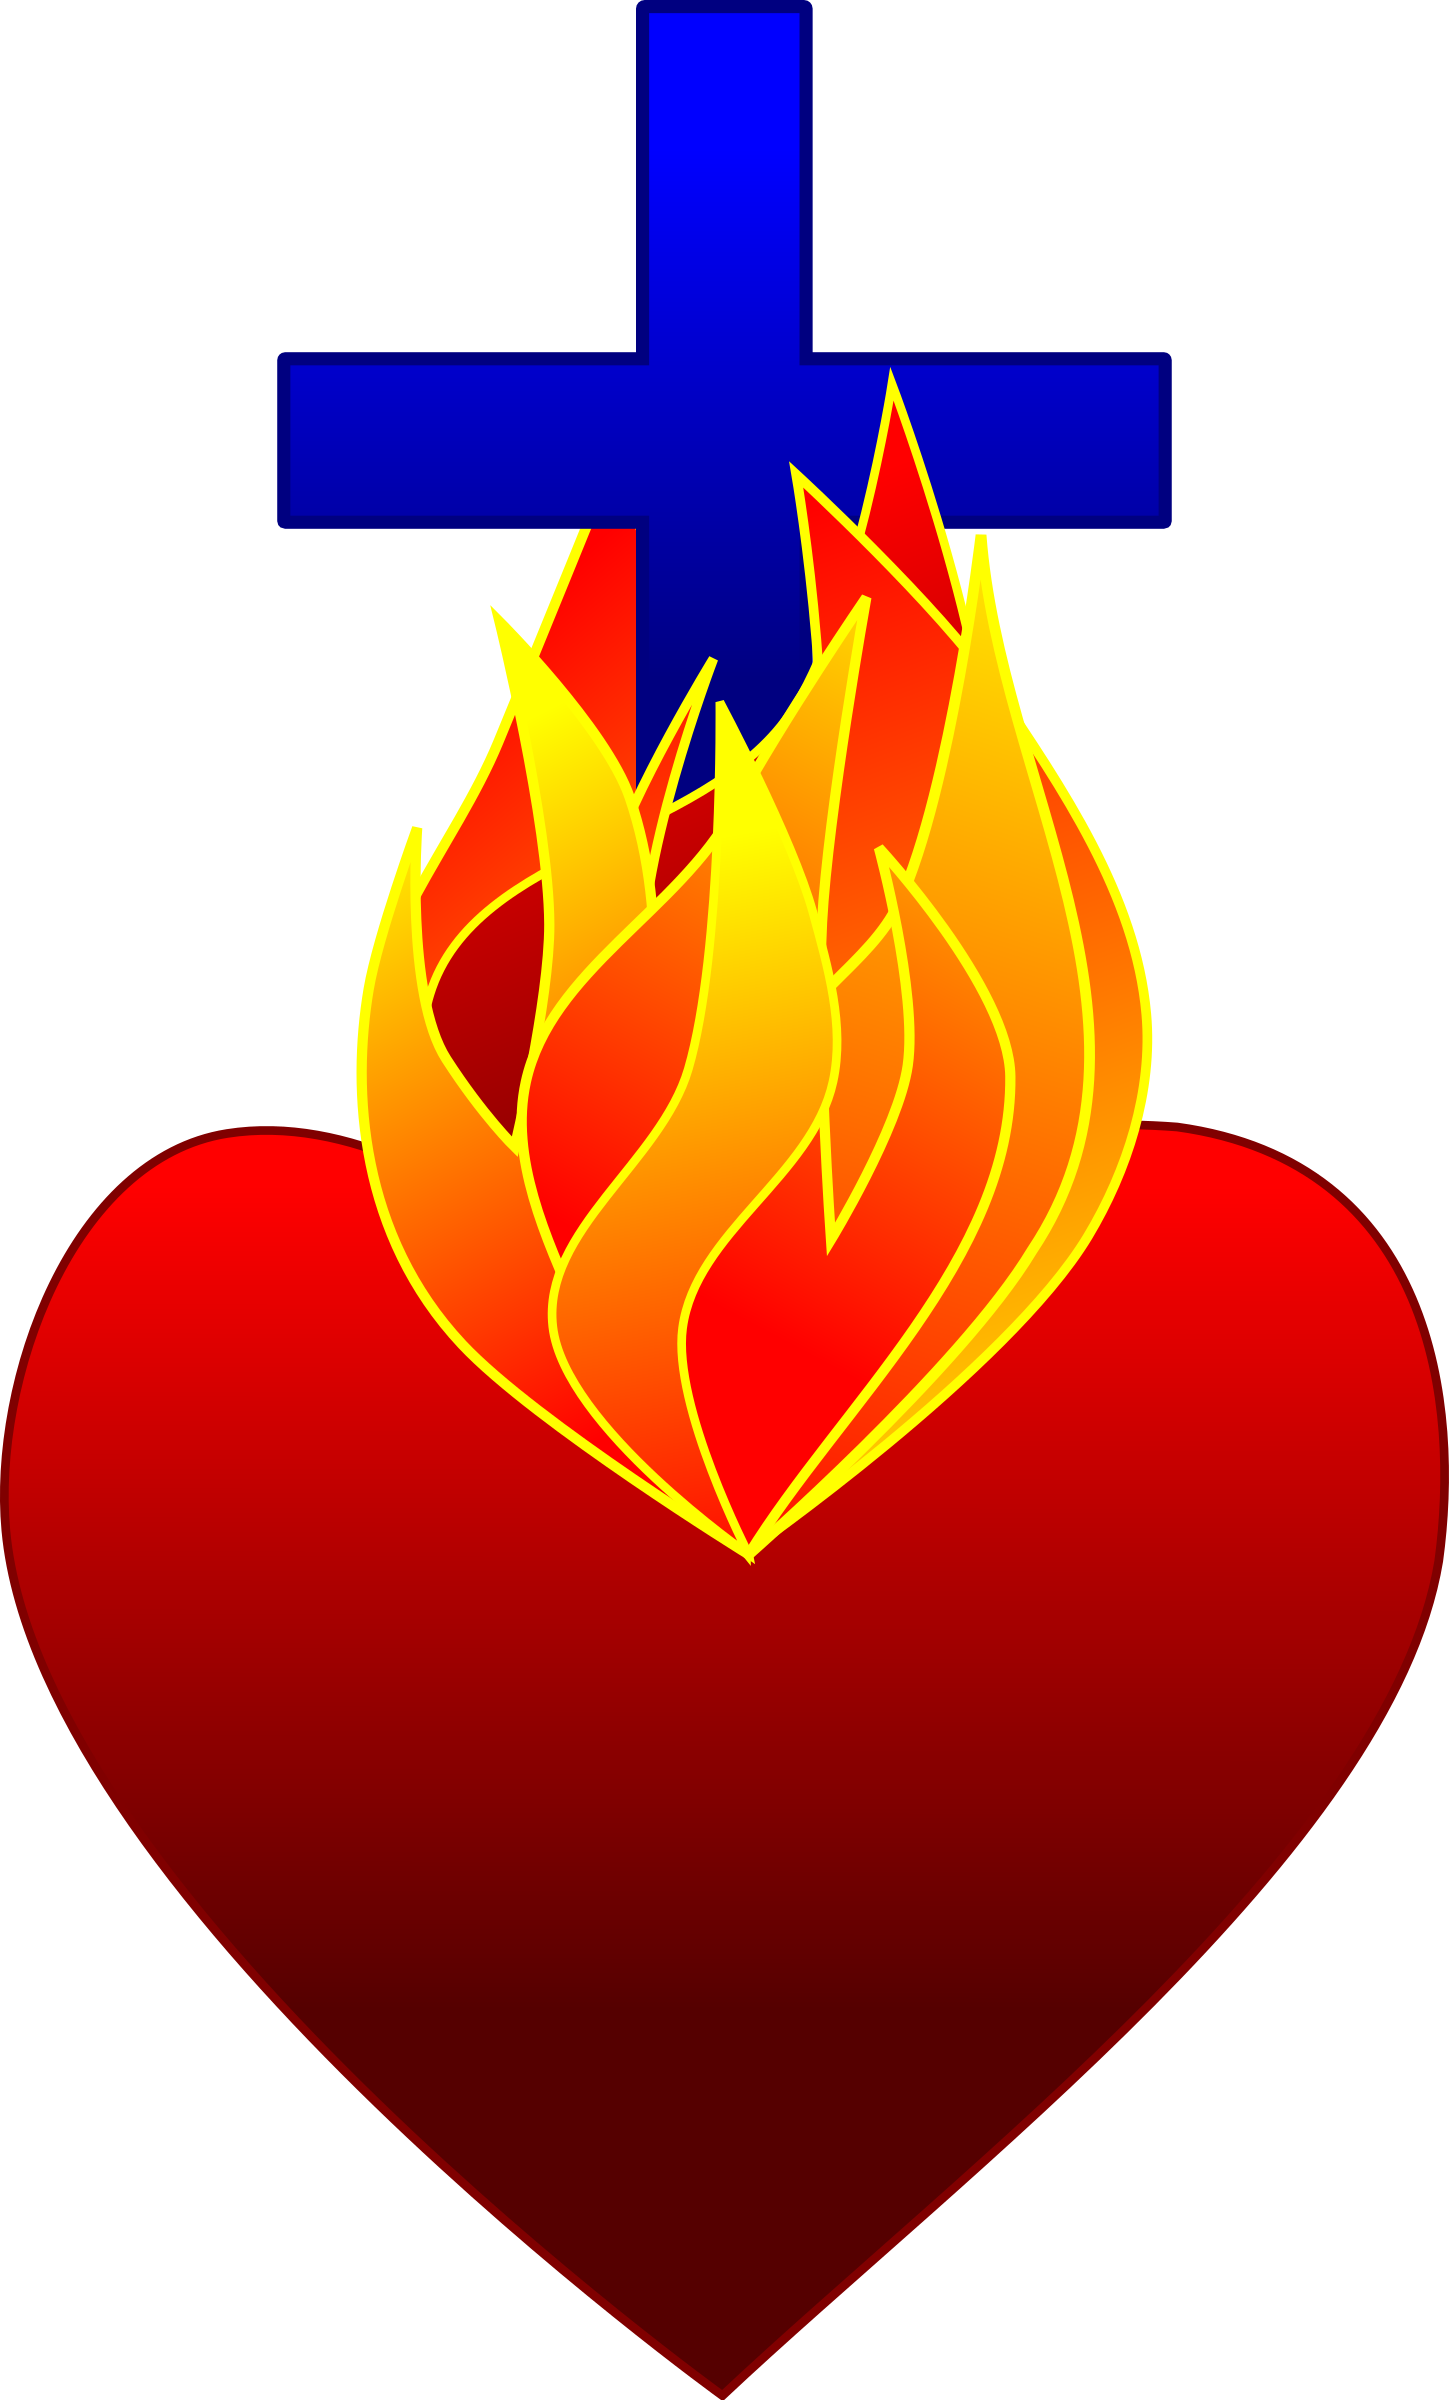 Heart on icons png. Hearts clipart fire